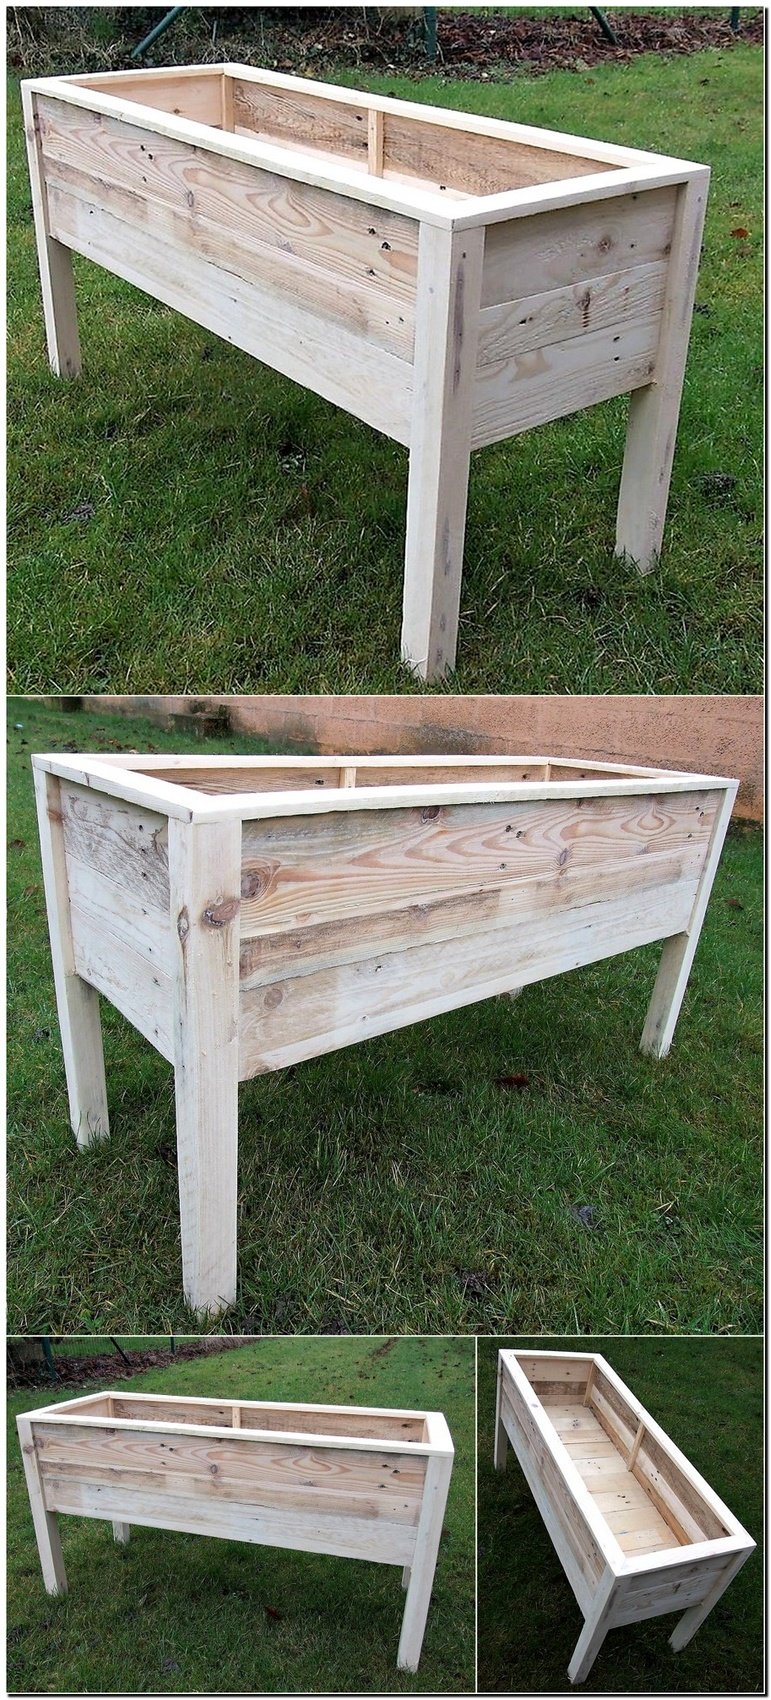 100 Ideas for Wood Pallet Recycling | Page 2 | Wood Pallet ...